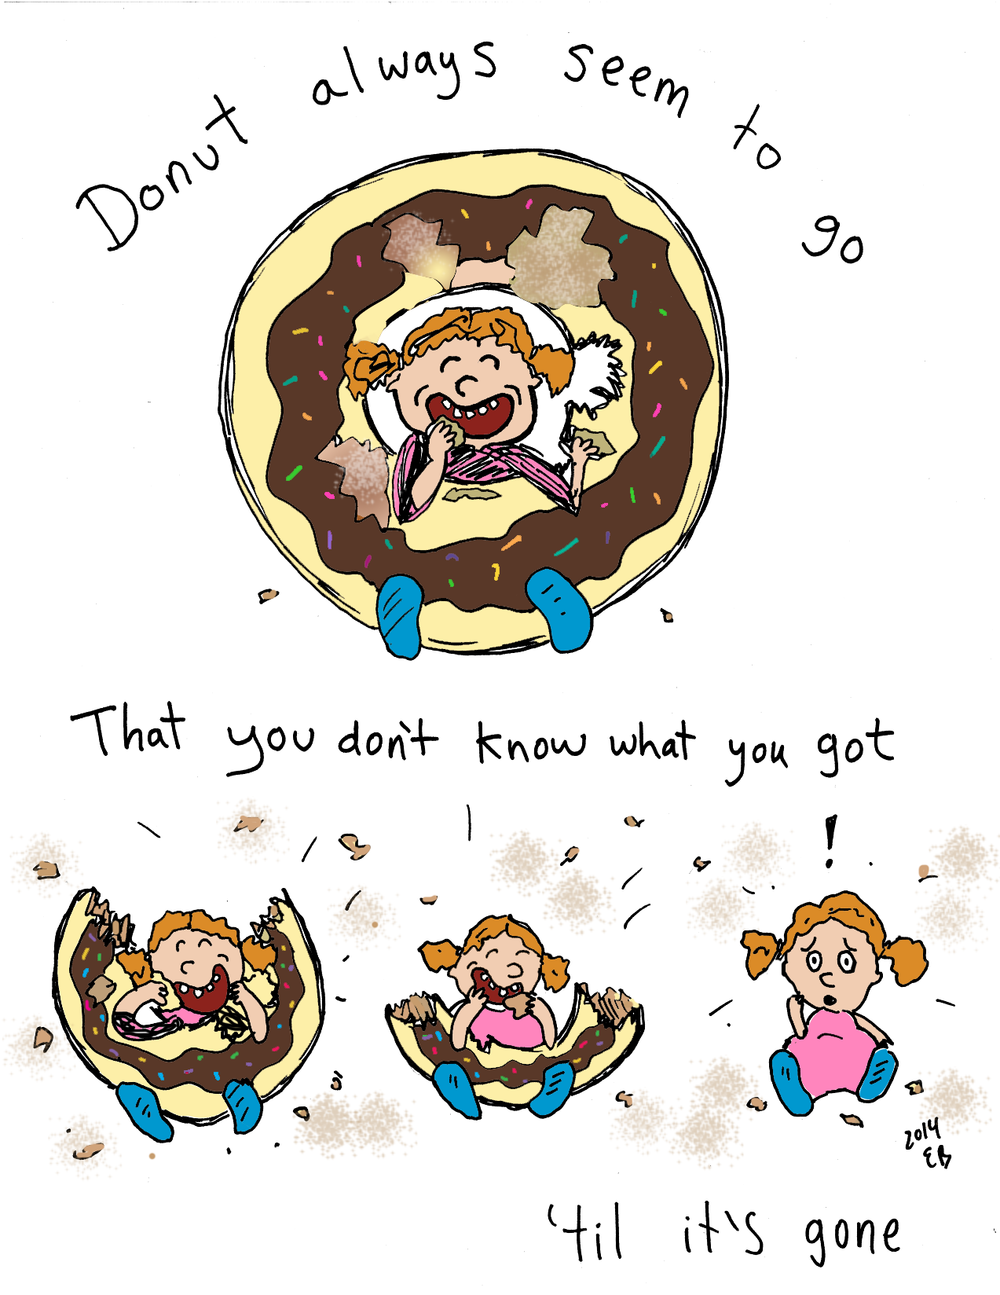 Donut seem to go